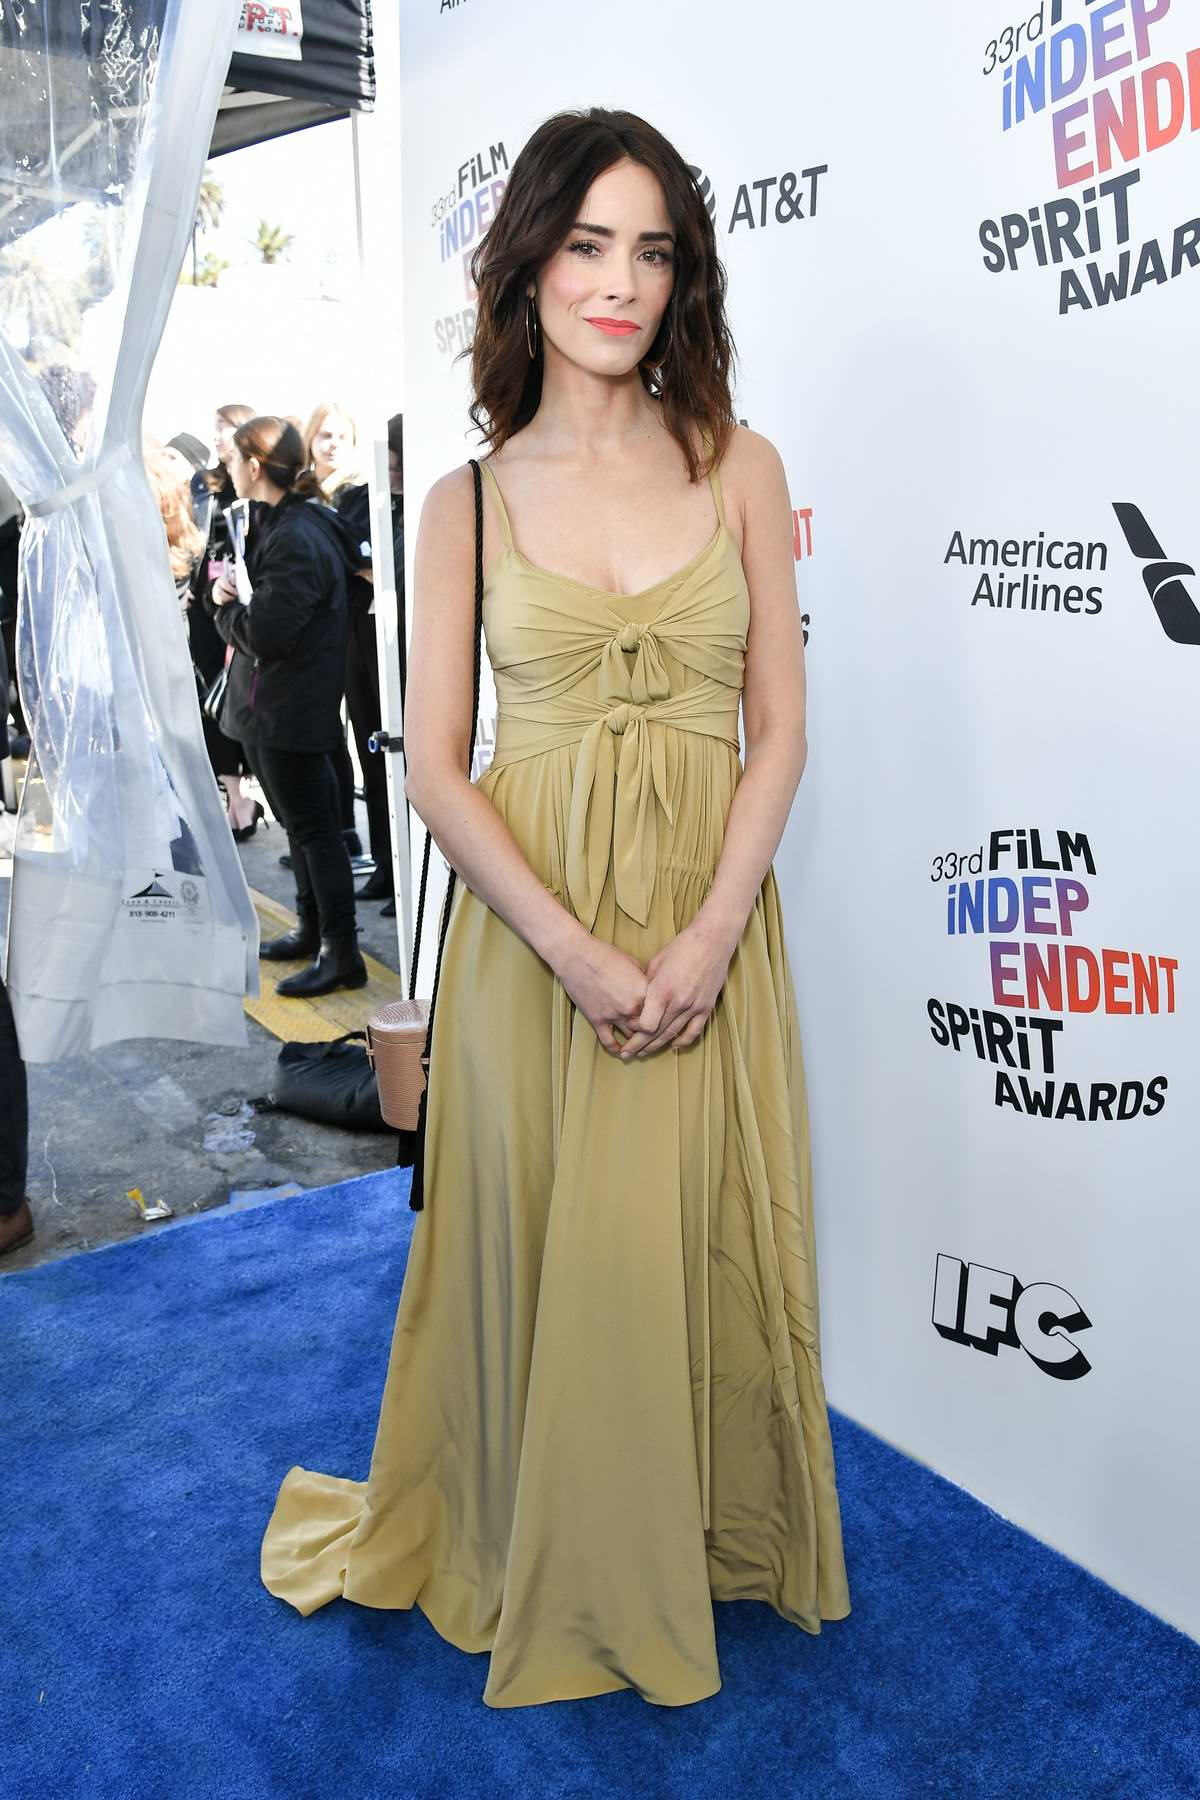 Abigail Spencer attends the 33rd Film Independent Spirit Awards in Los Angeles